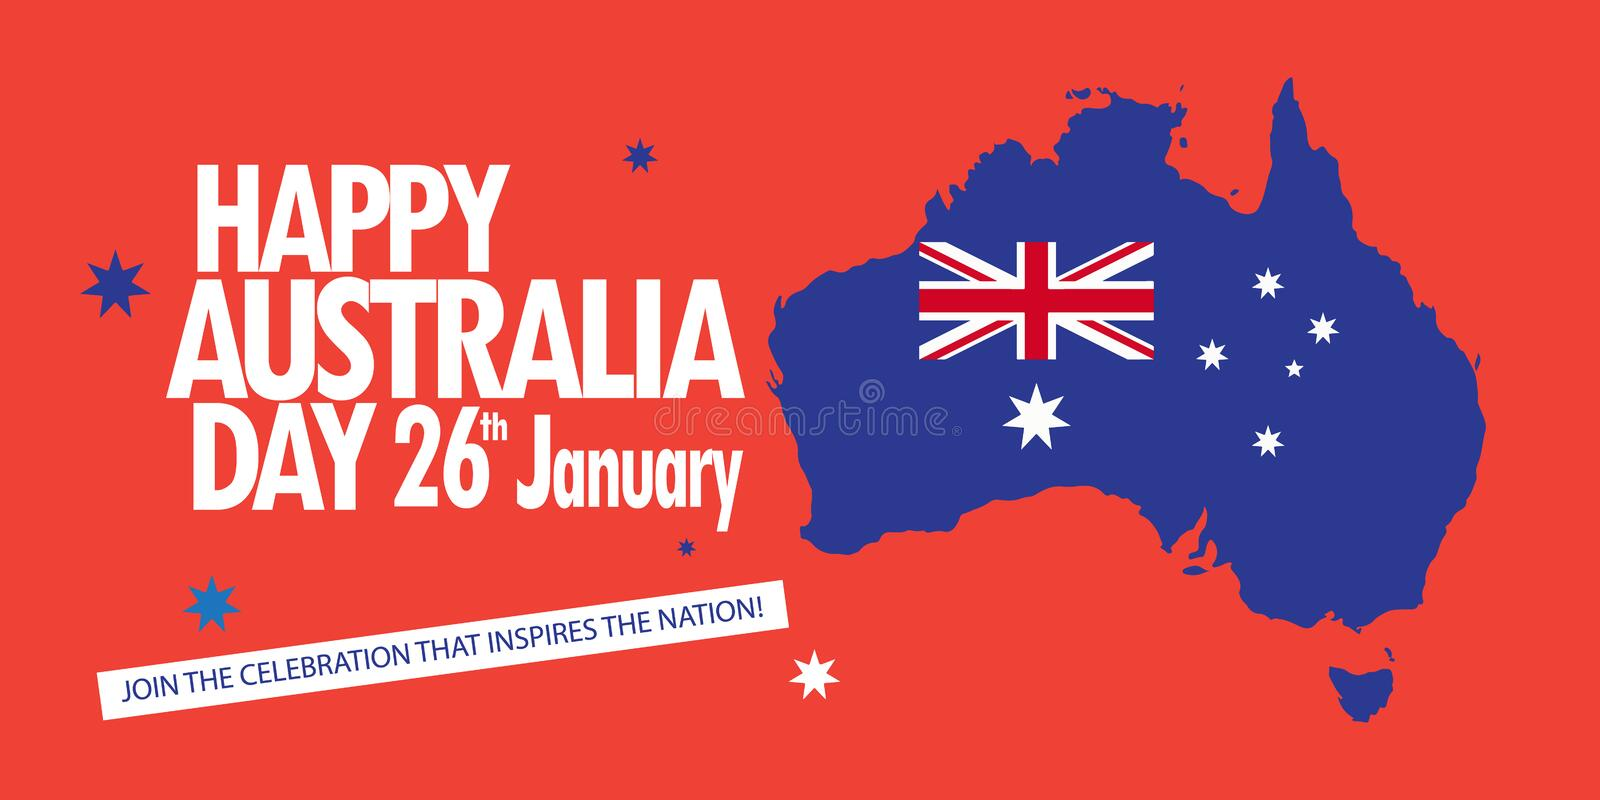 Download Australia Day Stock Vector - Image: 83774566